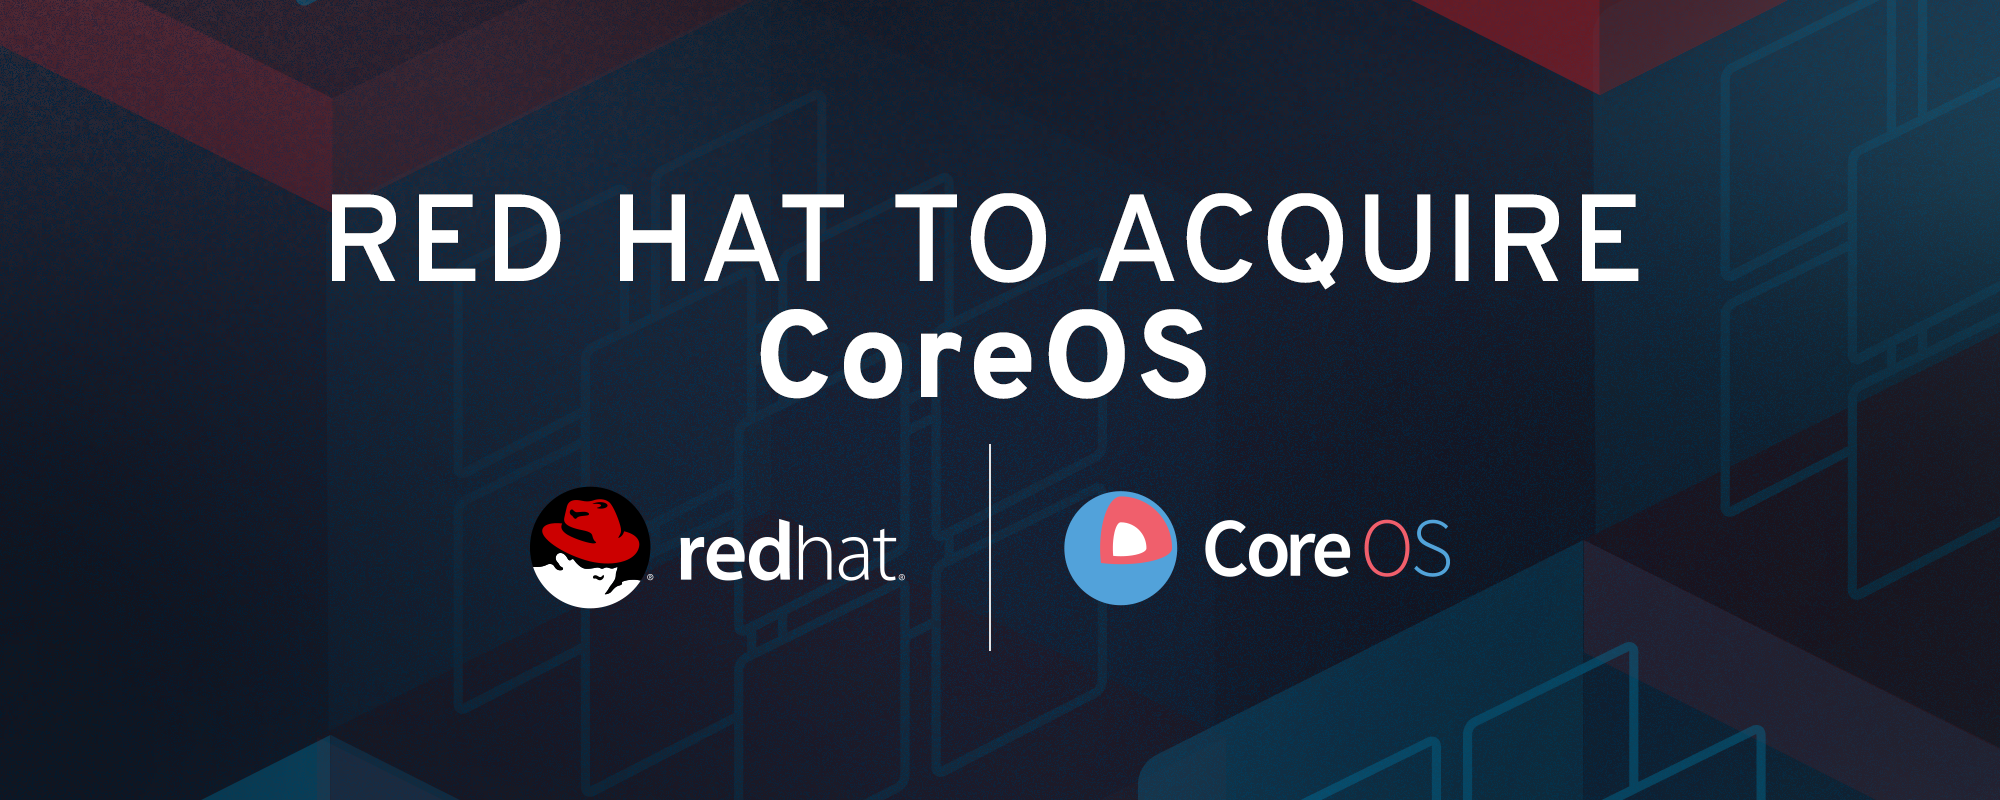 Red Hat to acquire CoreOS